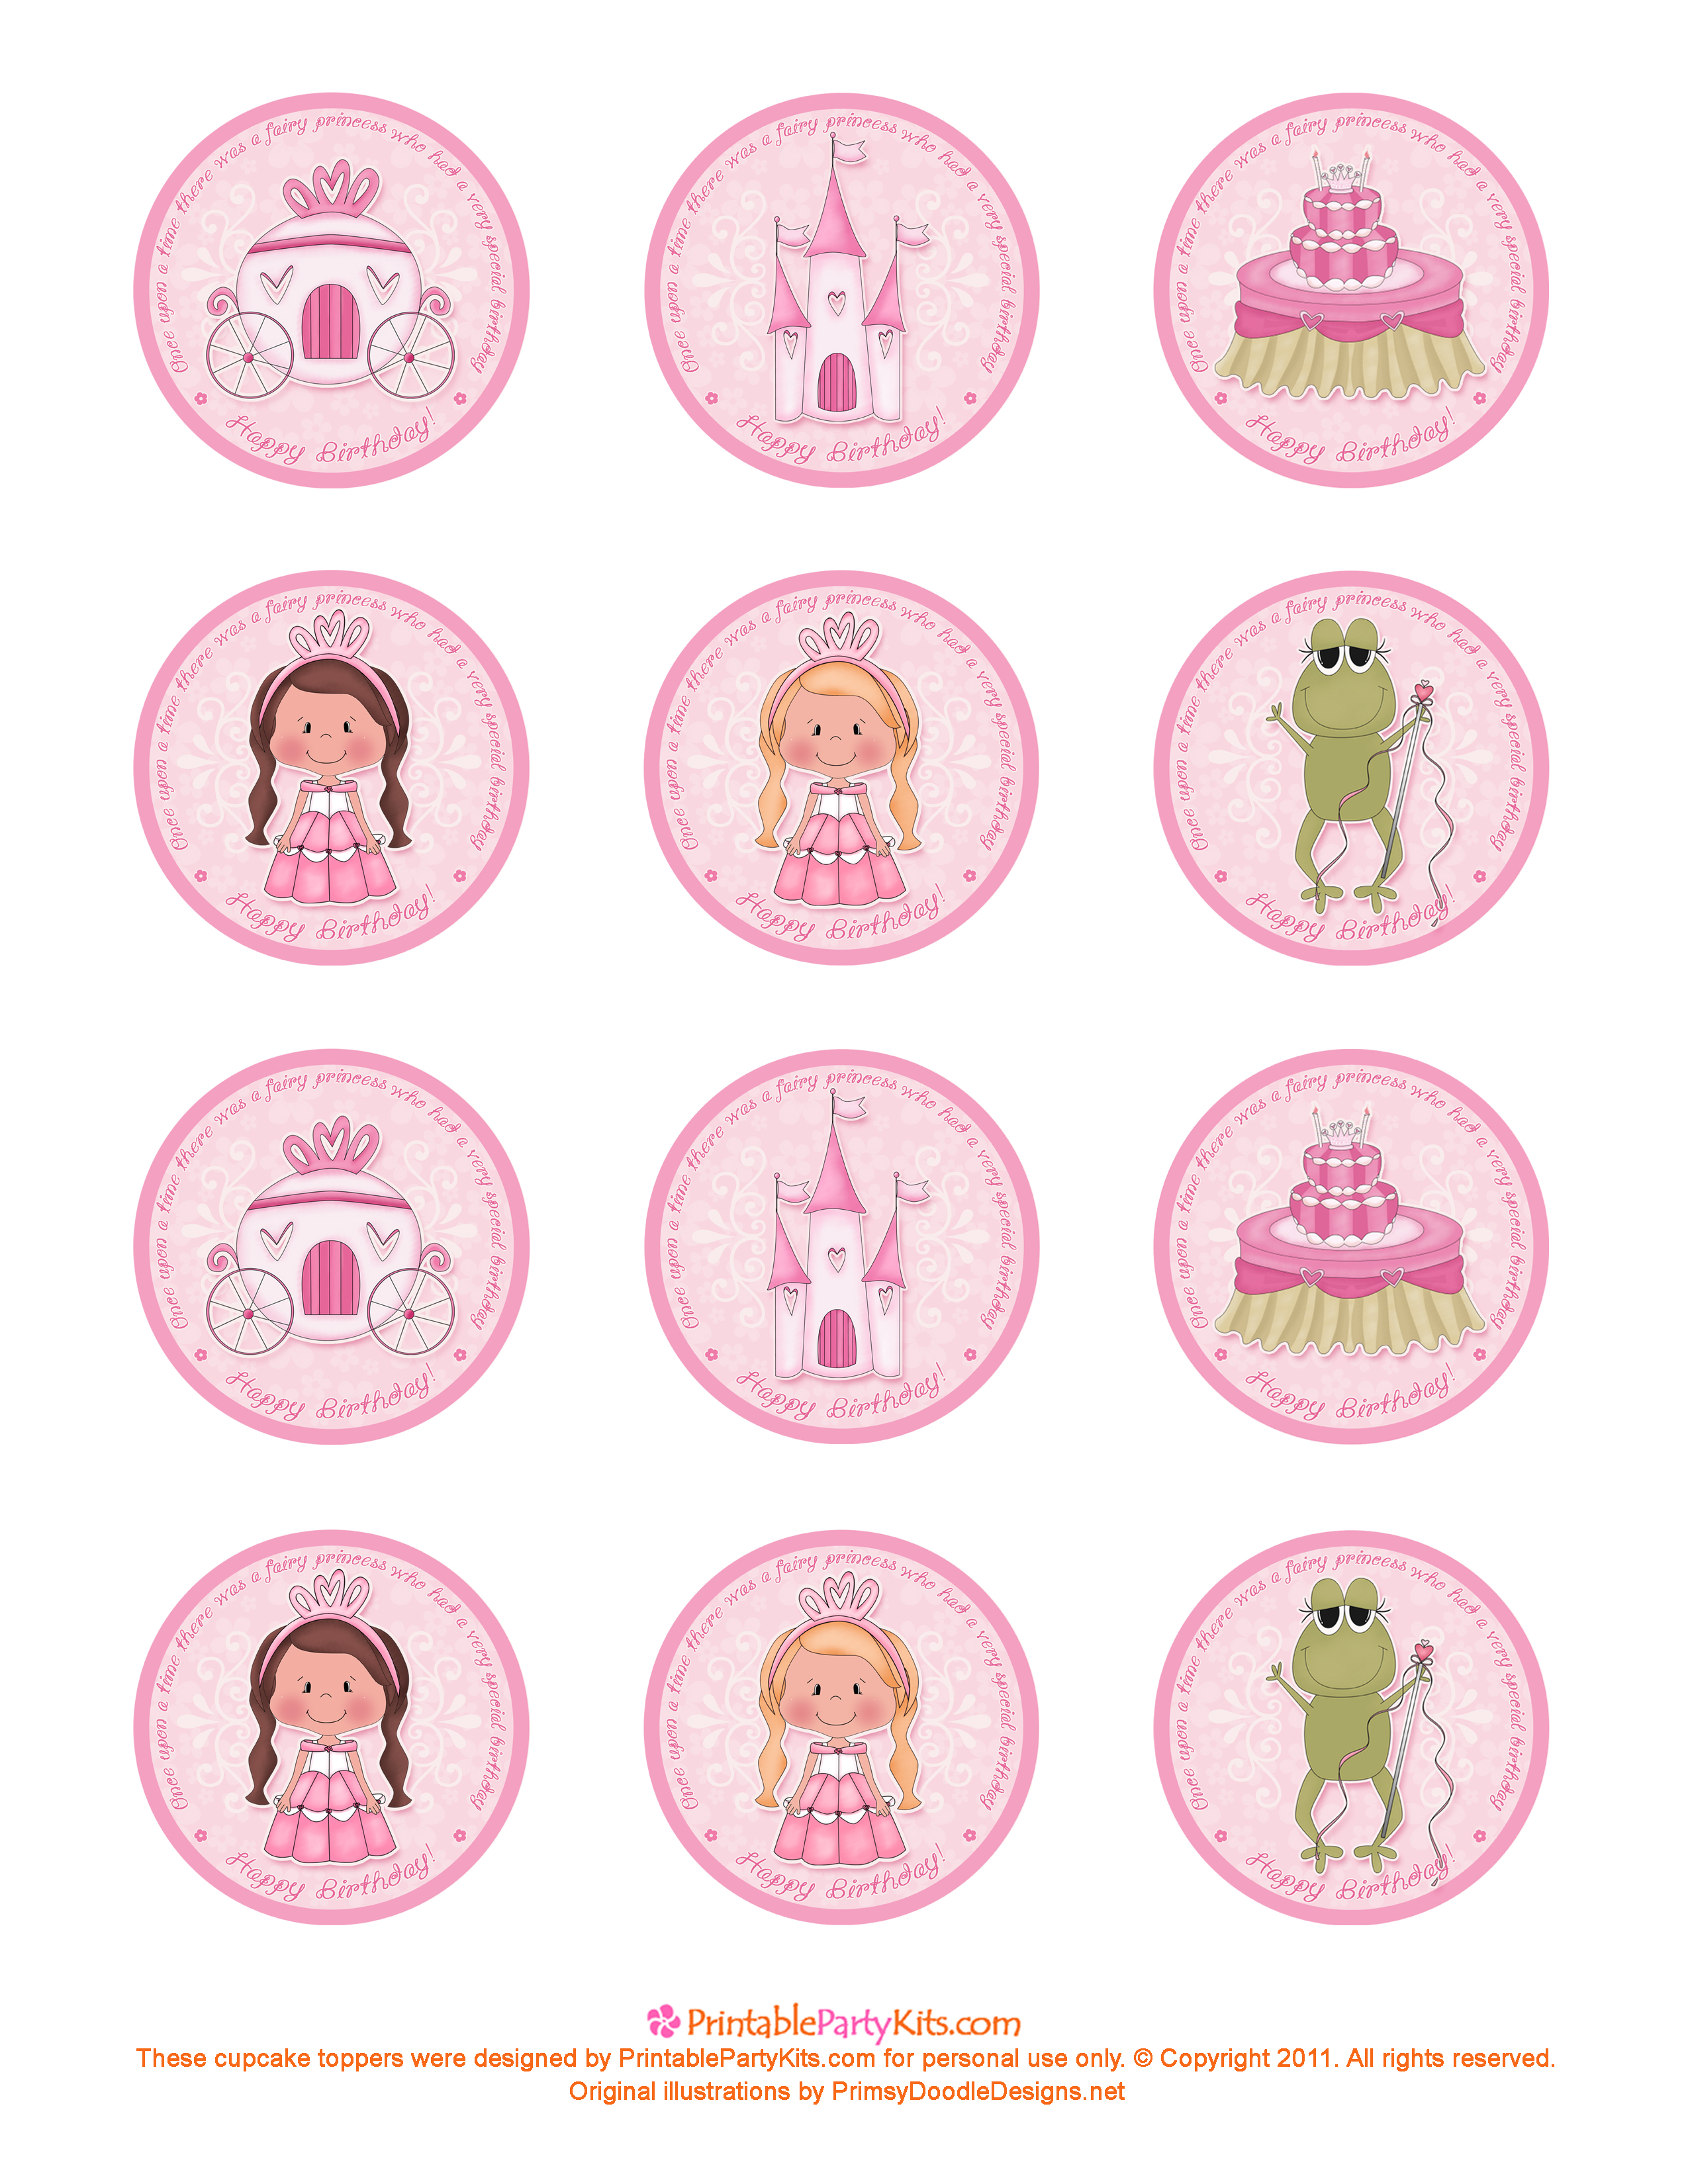 9 Images of Printable Princess Cupcake Toppers